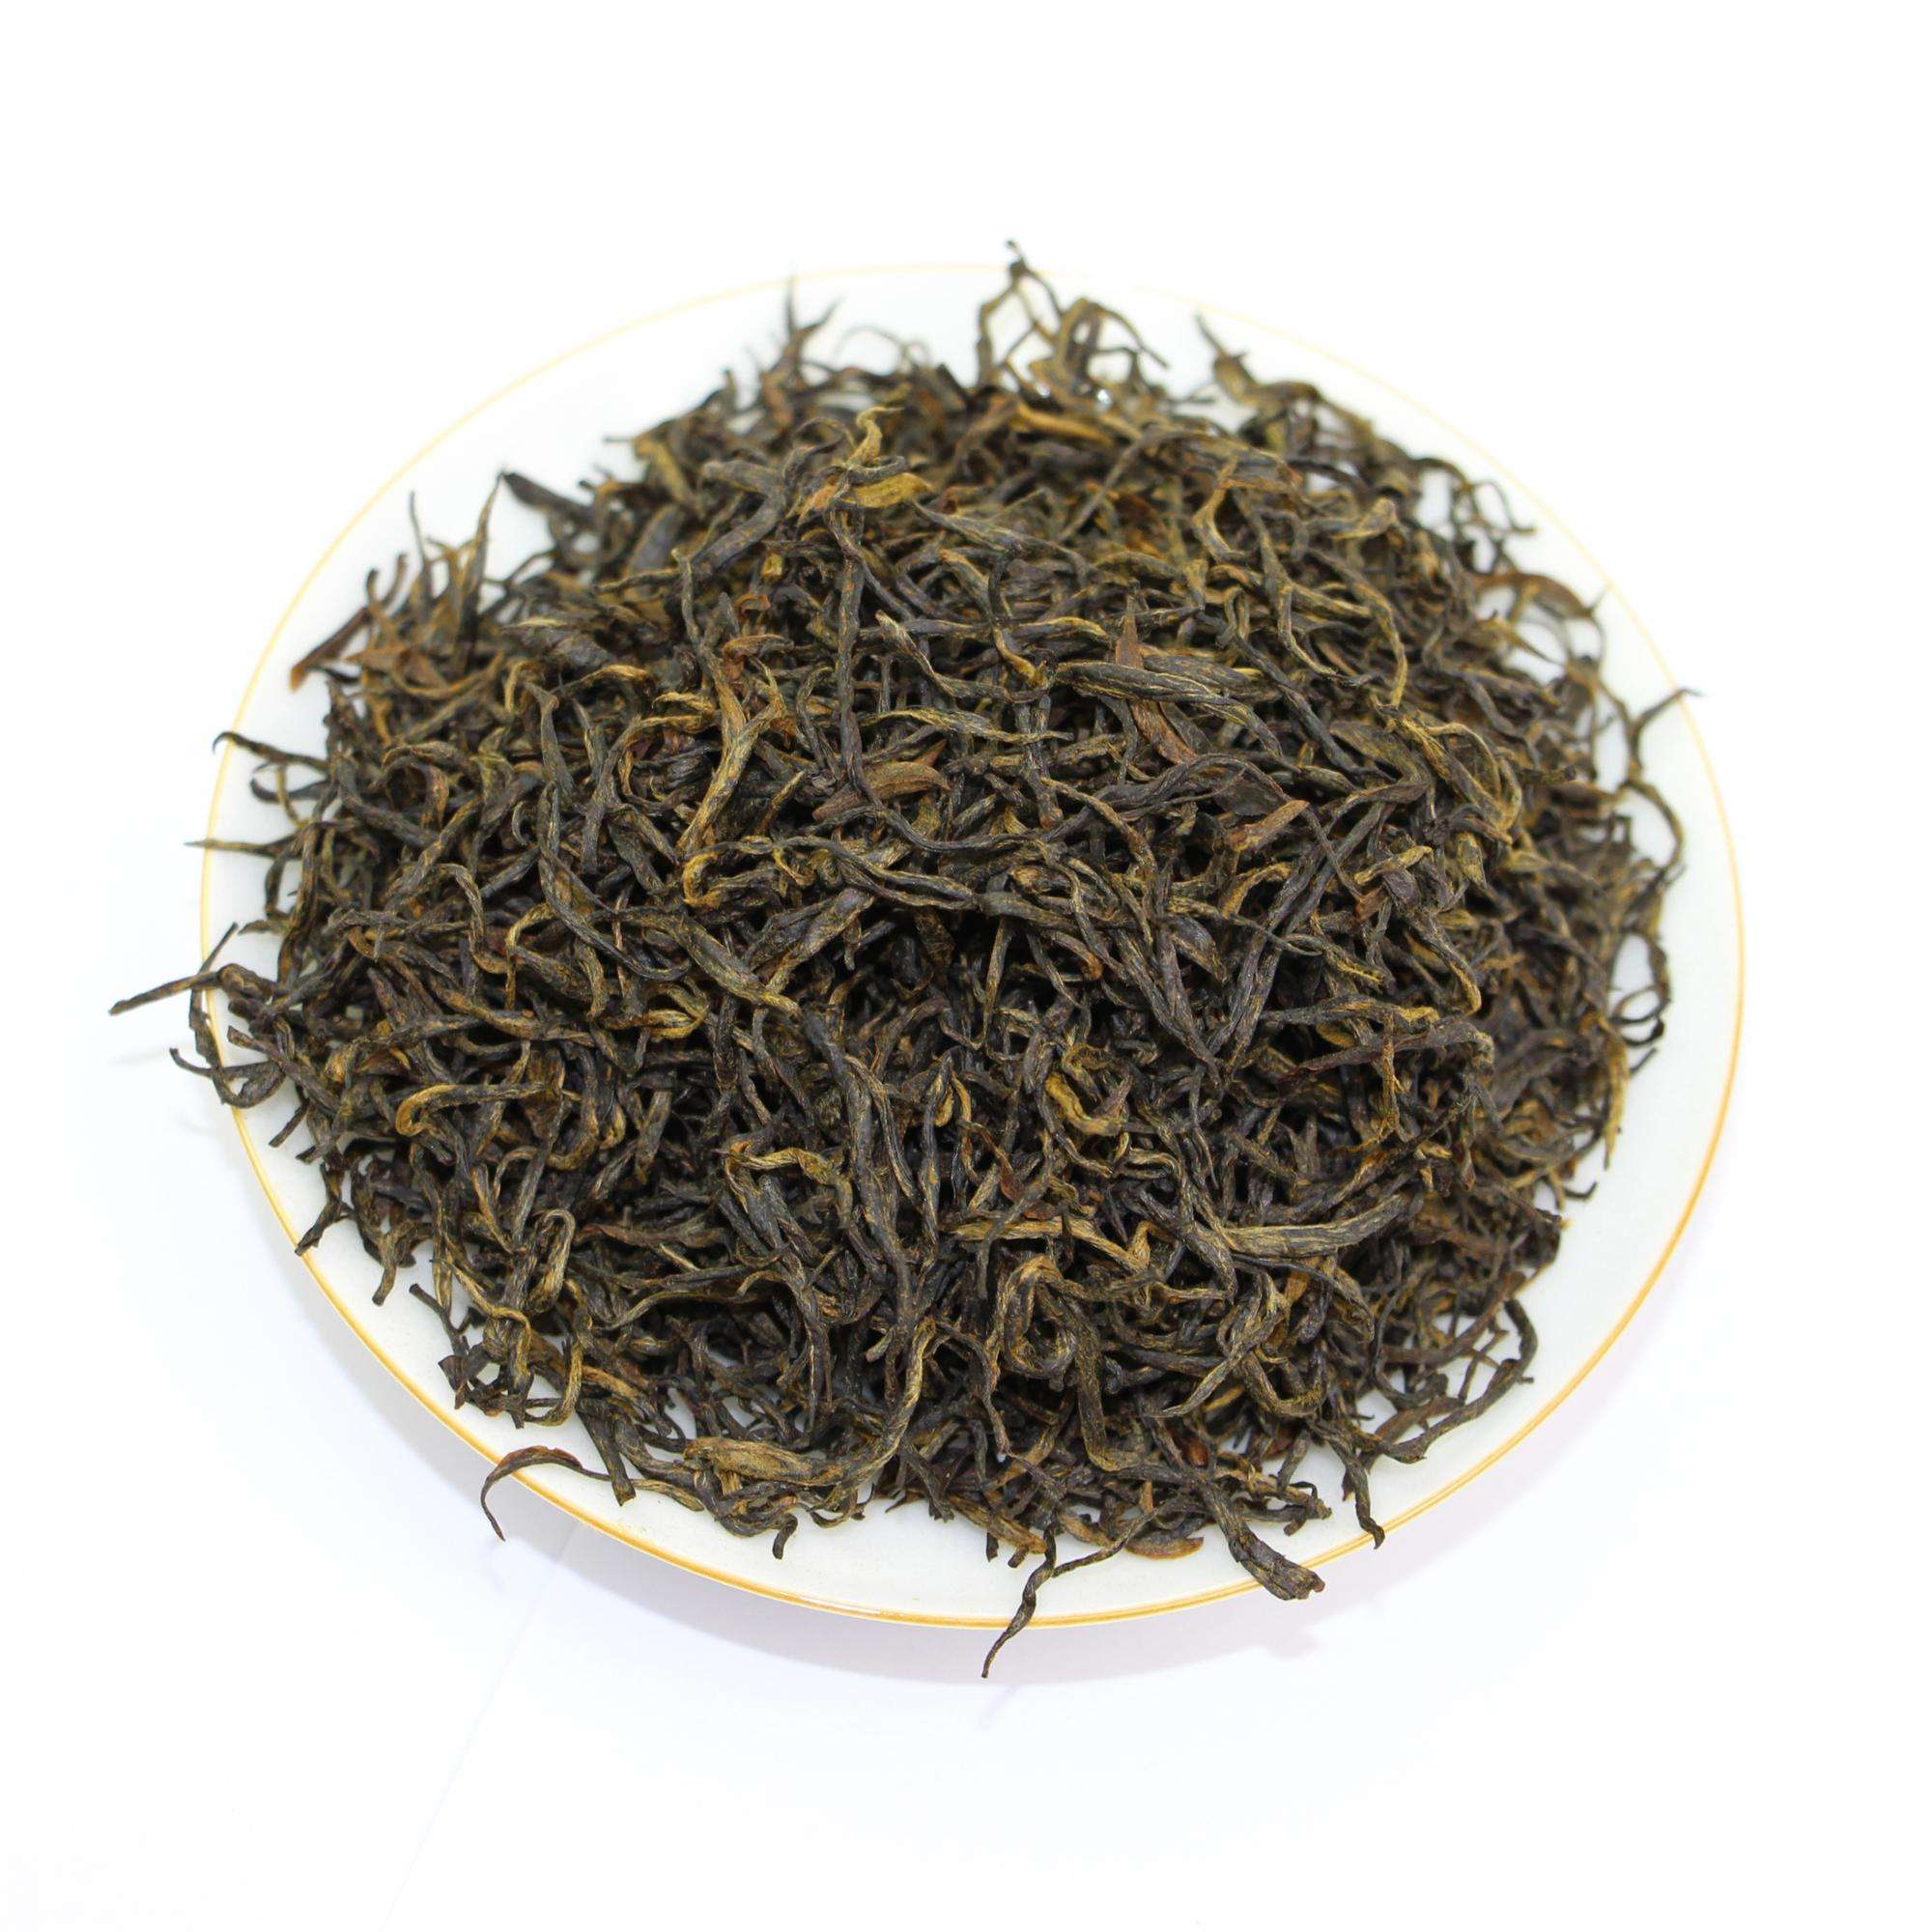 4A Blsck china famous suppliers premium bulk christmas gifts new refined Chinese tea gift importers in ctc ceylon black tea